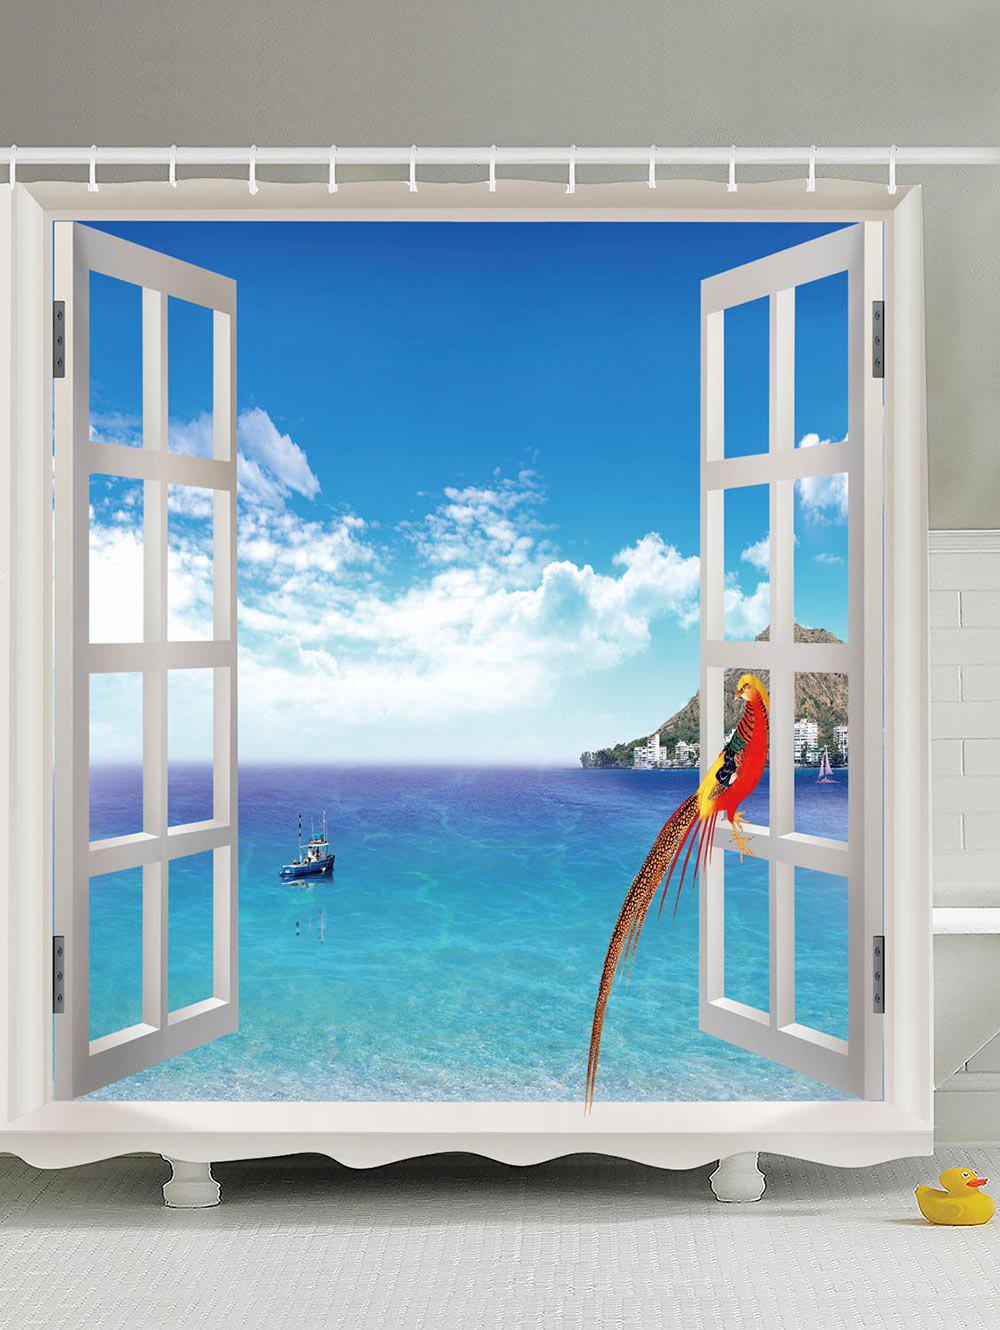 Window Seascape Print Bathroom Shower Curtain new rooder hoverboard scooter single wheel electric skateboard